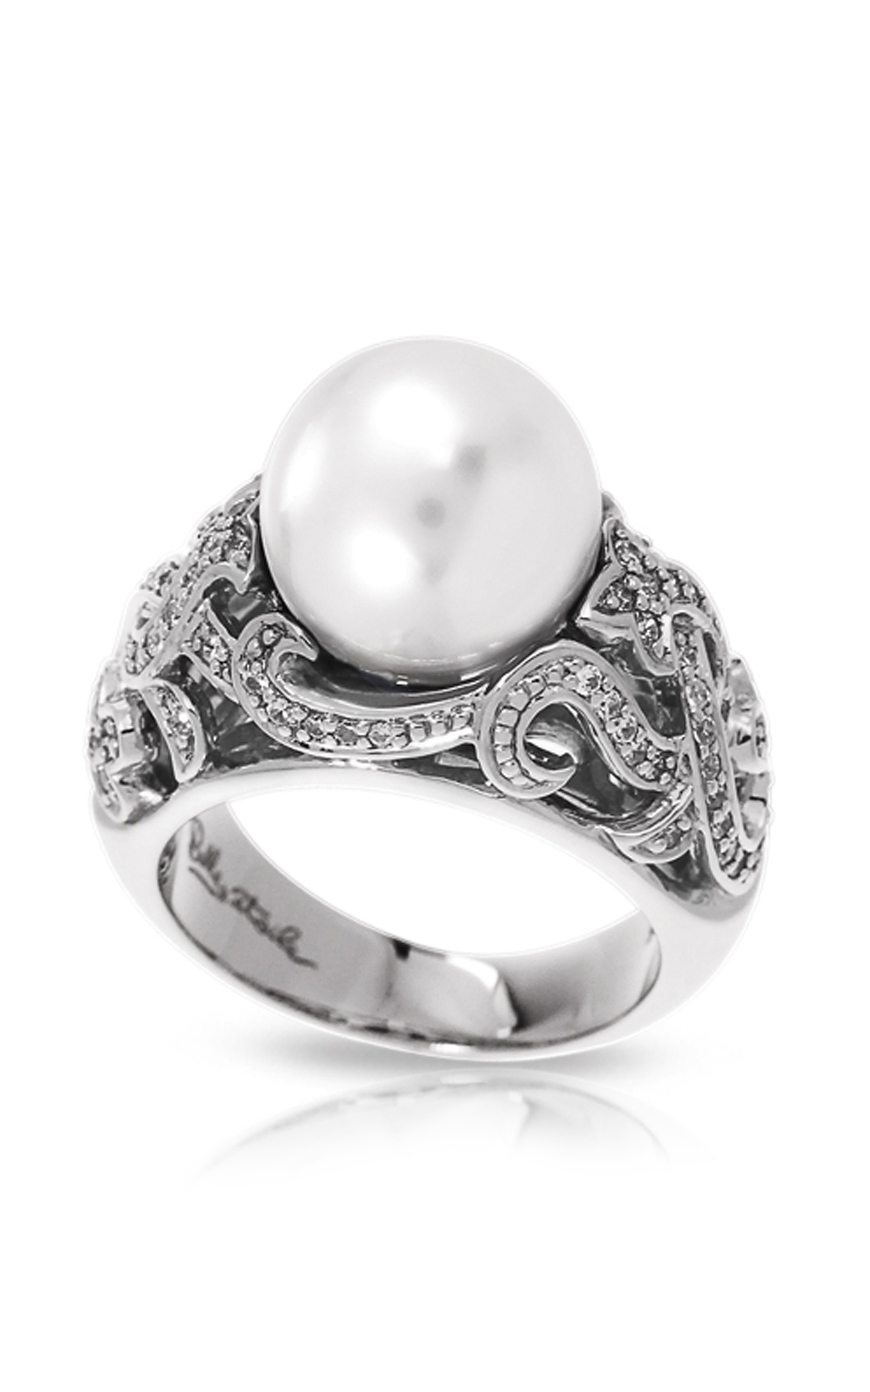 Belle Etoile Fiona White Ring 01031320102-8 product image